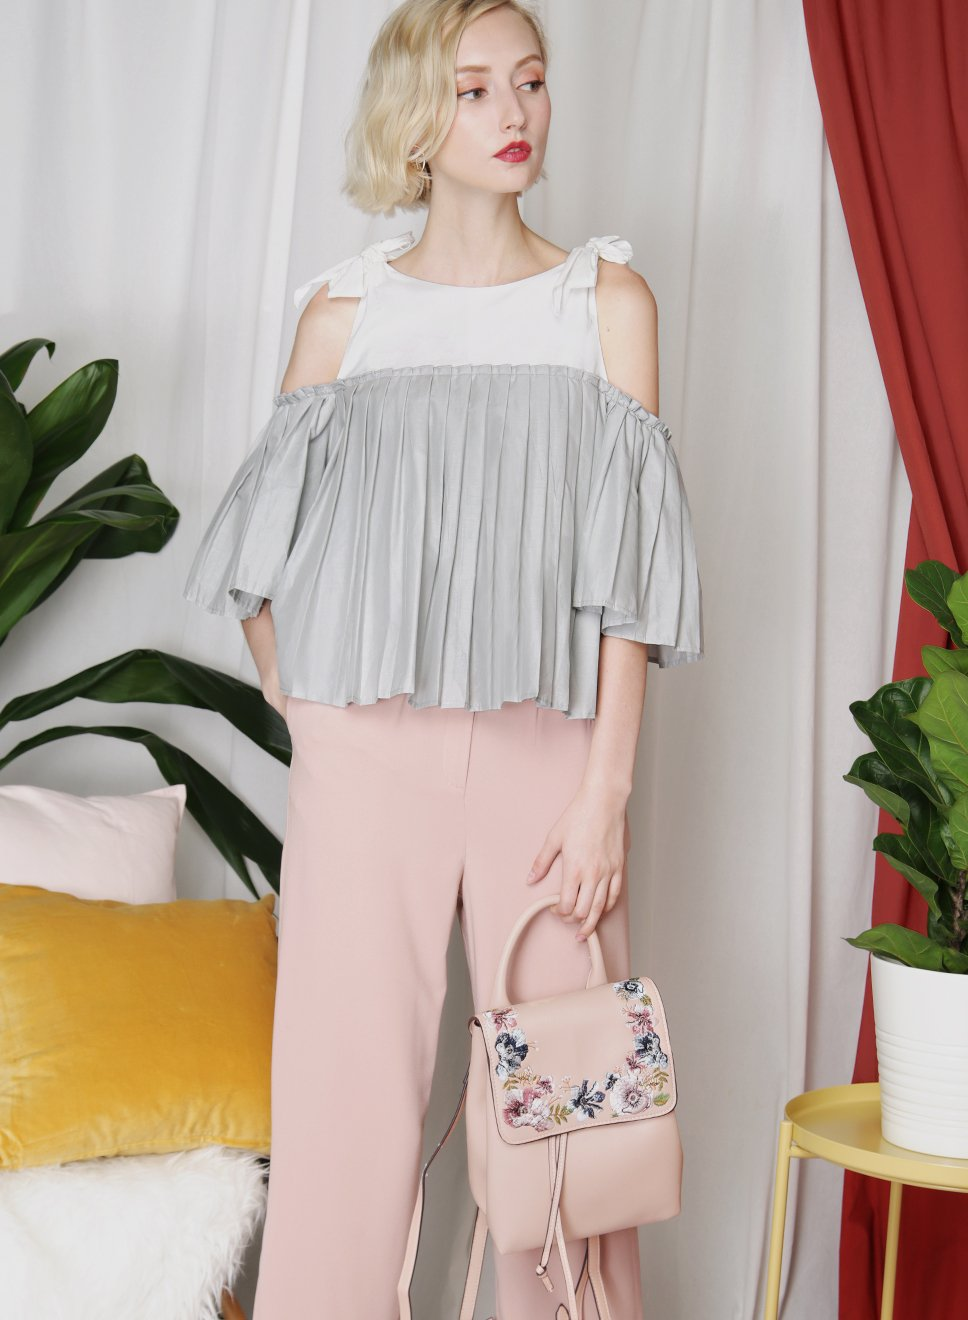 FRONTIER Pleated Contrast Top (Grey) at $ 34.50 only sold at And Well Dressed Online Fashion Store Singapore